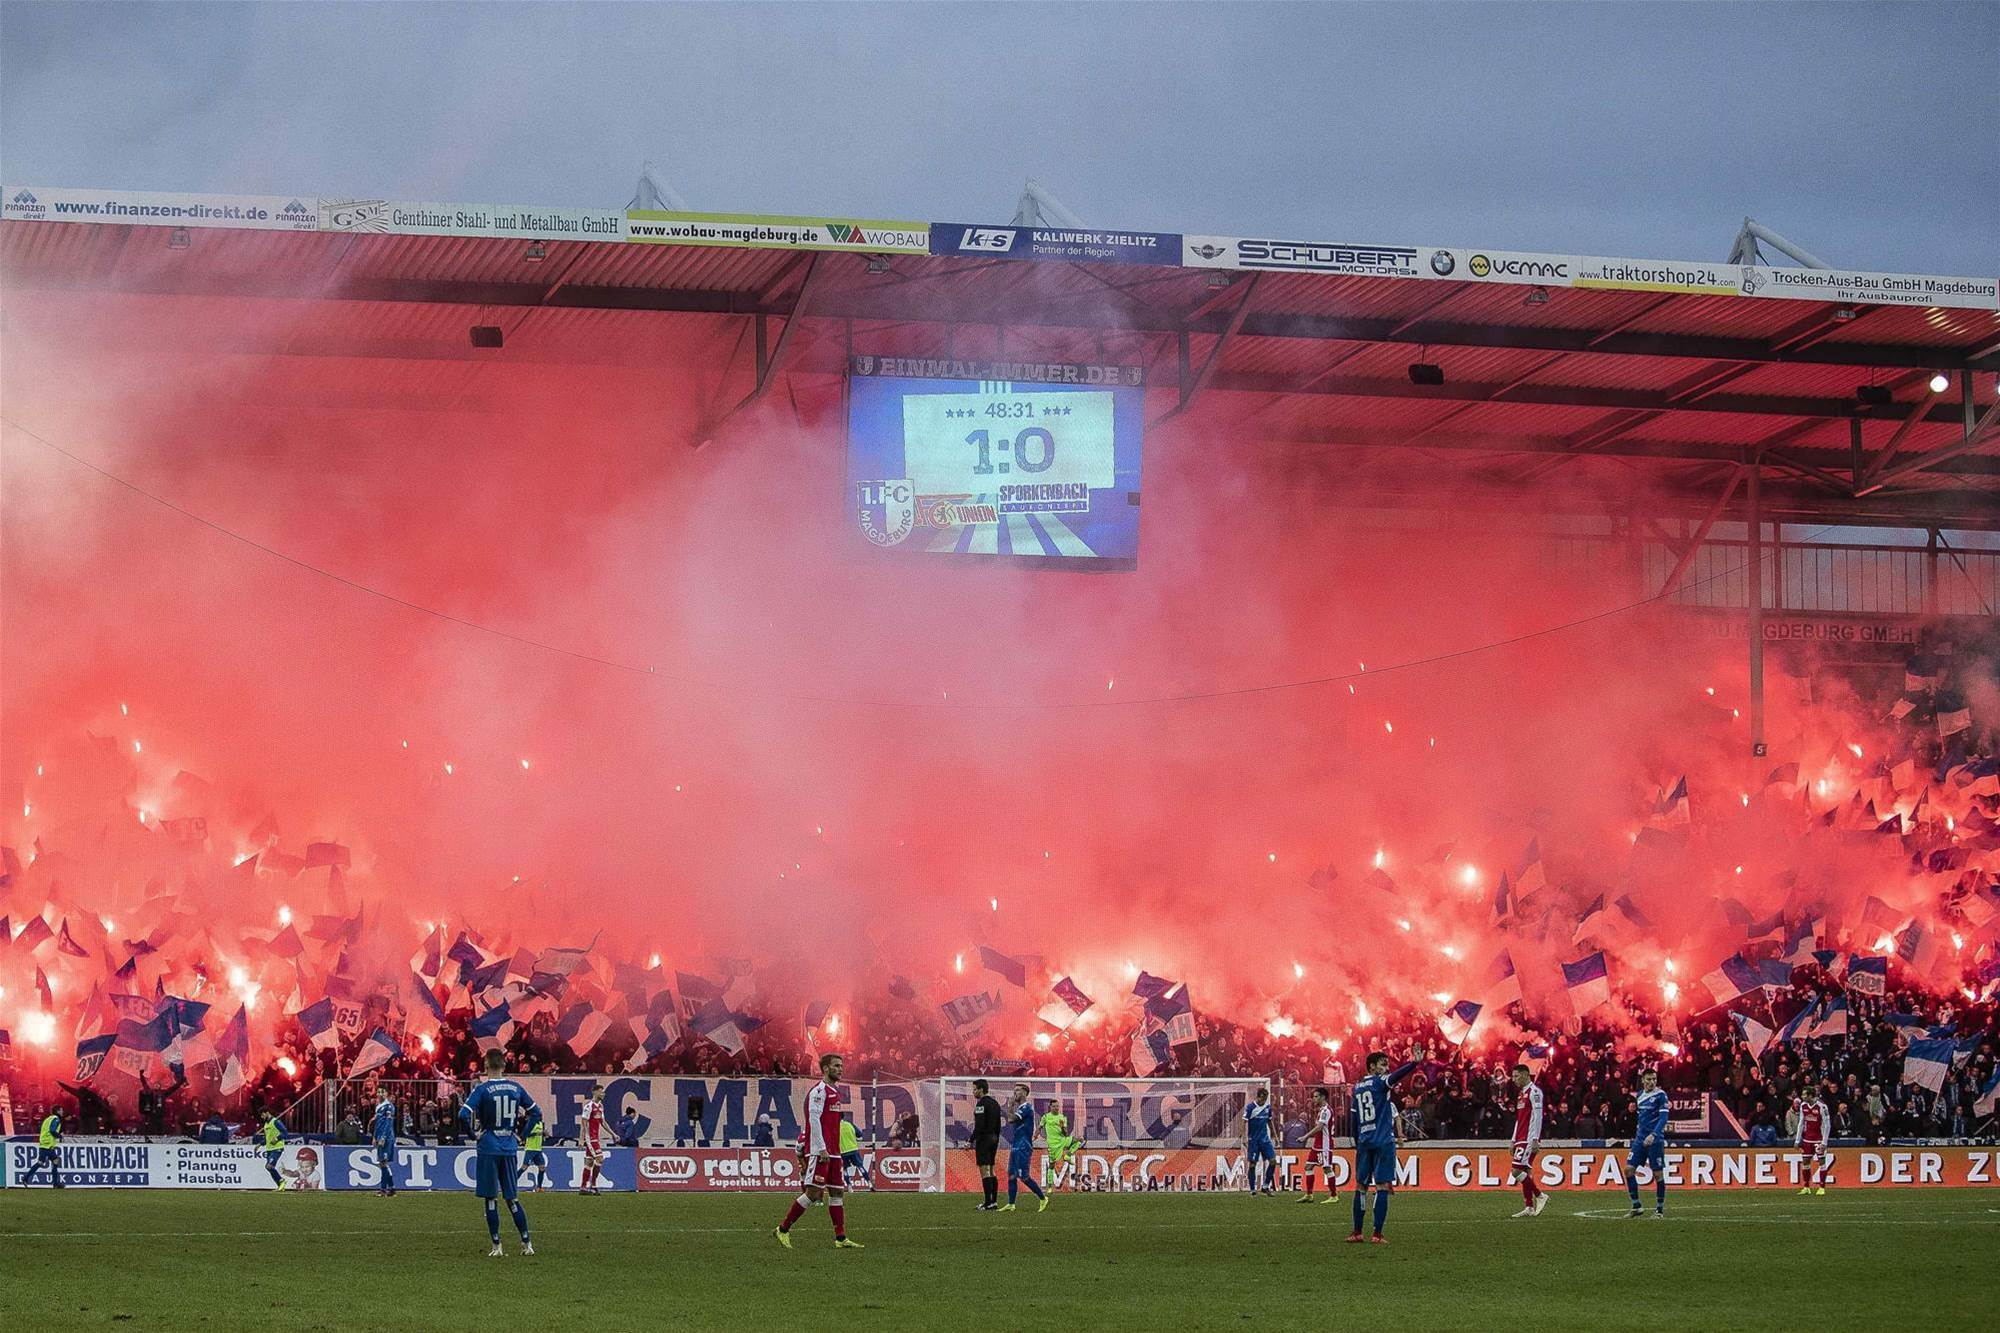 Watch! German side's pyro party